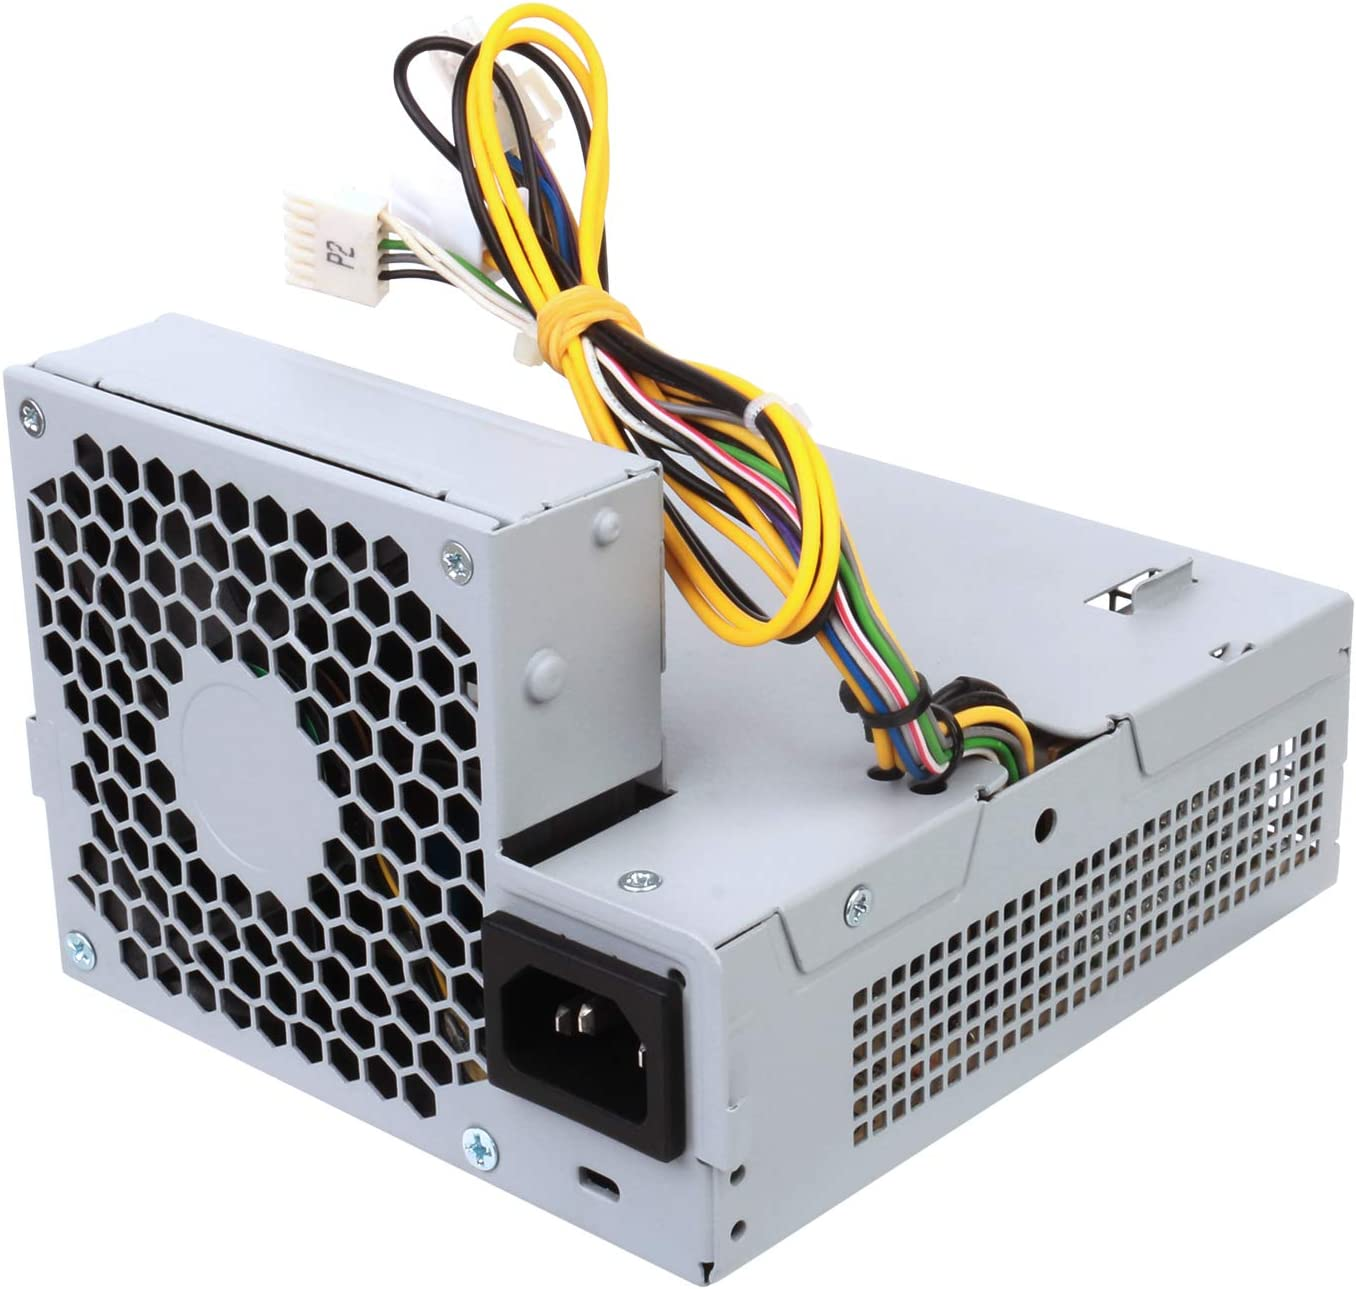 Li-SUN 240W Power Supply Replacement for HP Pro 6000 6005 6080 6200 6280 6300 6305 6380/ Elite 8000 8100 8180 8200 8280 8300 8380 SFF